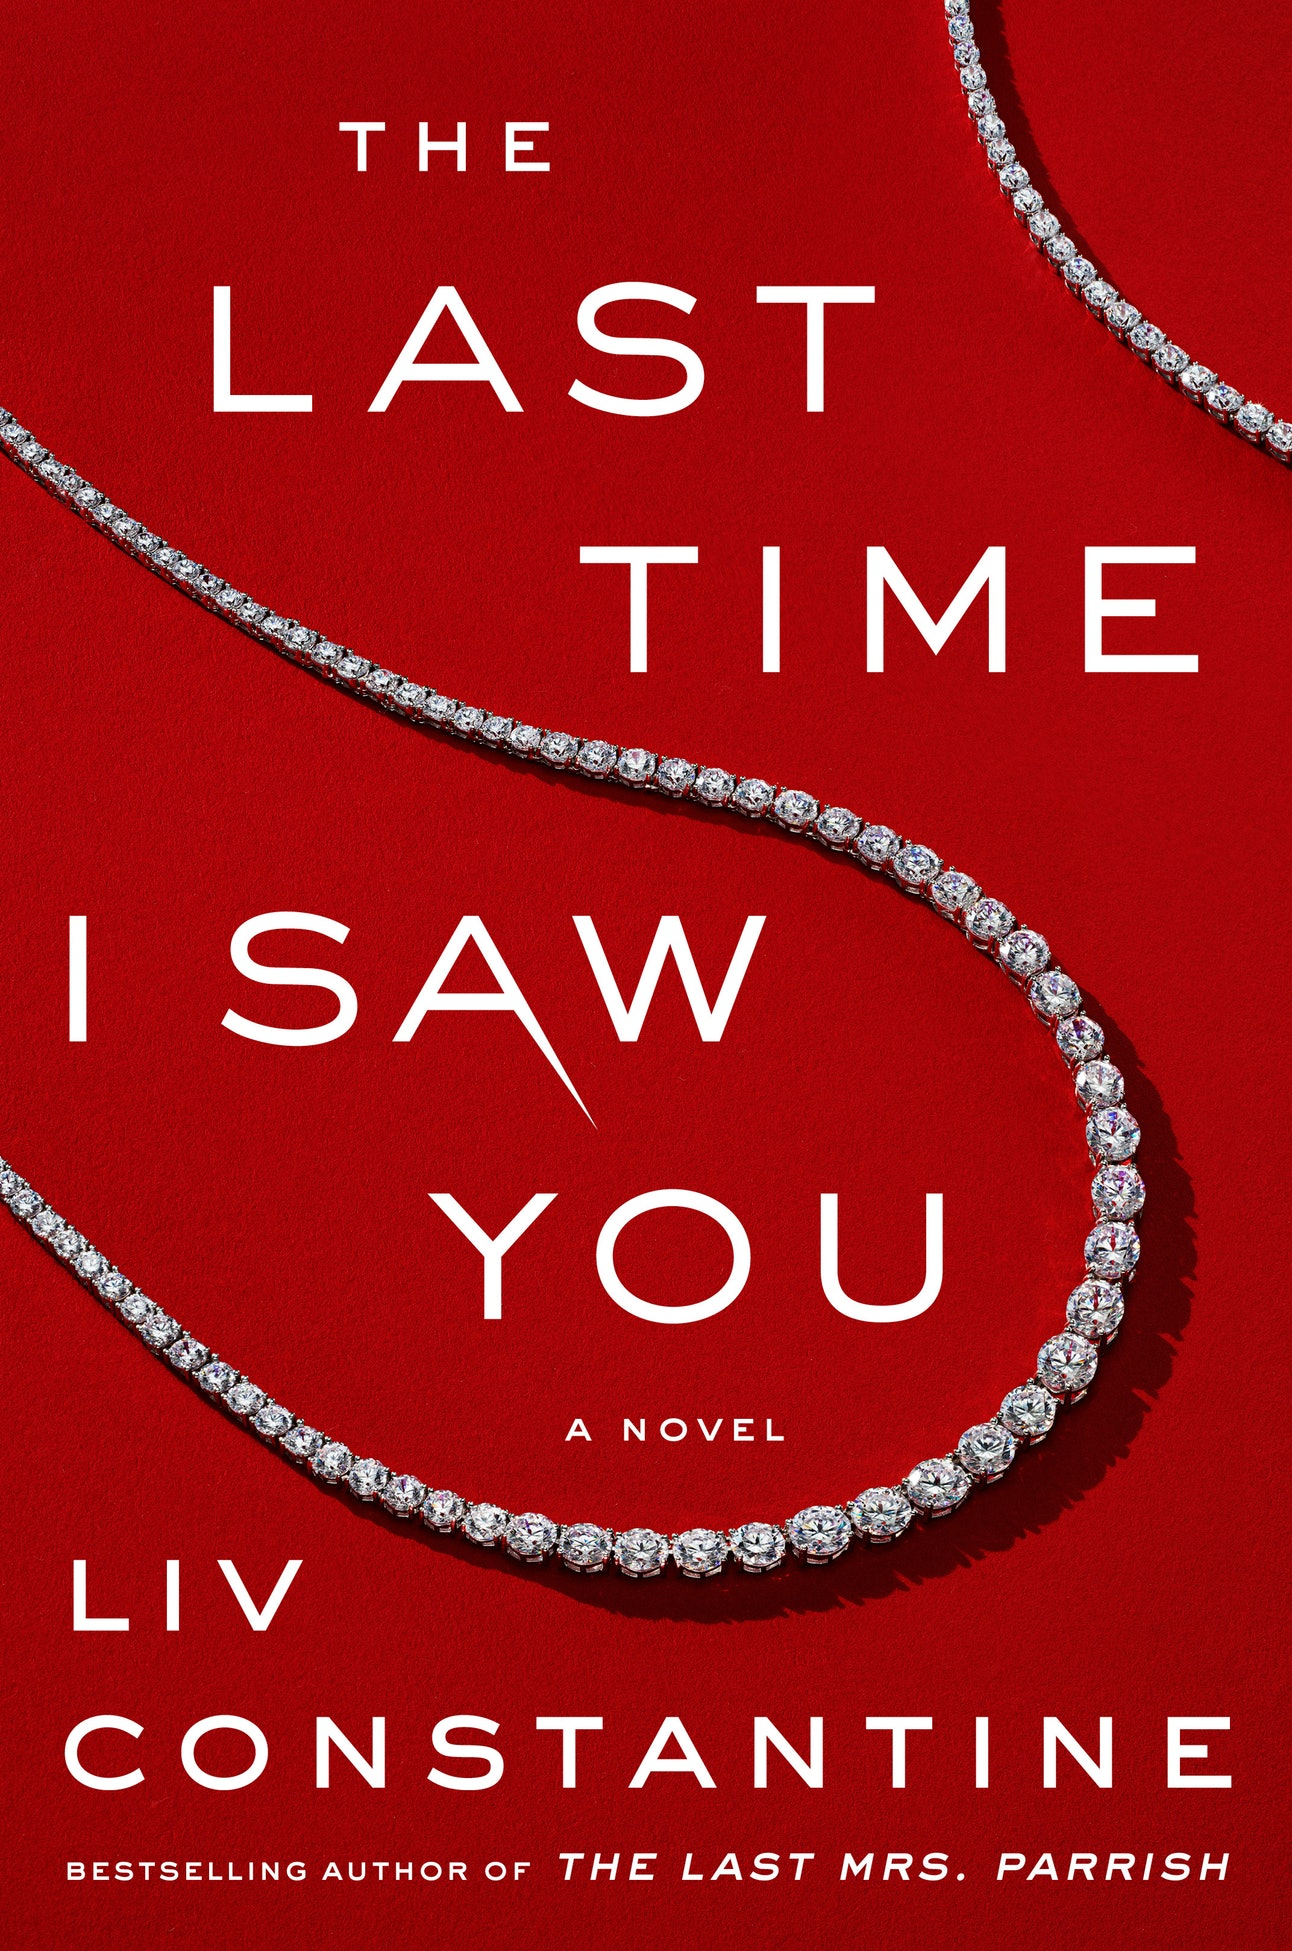 The Last Time I Saw You - If you're looking for a thrilling read that will leave on the edge of your seat, and double bolting the doors, (we jest) then The Last Time I Saw You is for you. Based on Kate English's perfect life being turned into trauma, this novel focuses on crime, friendship, and secrets.